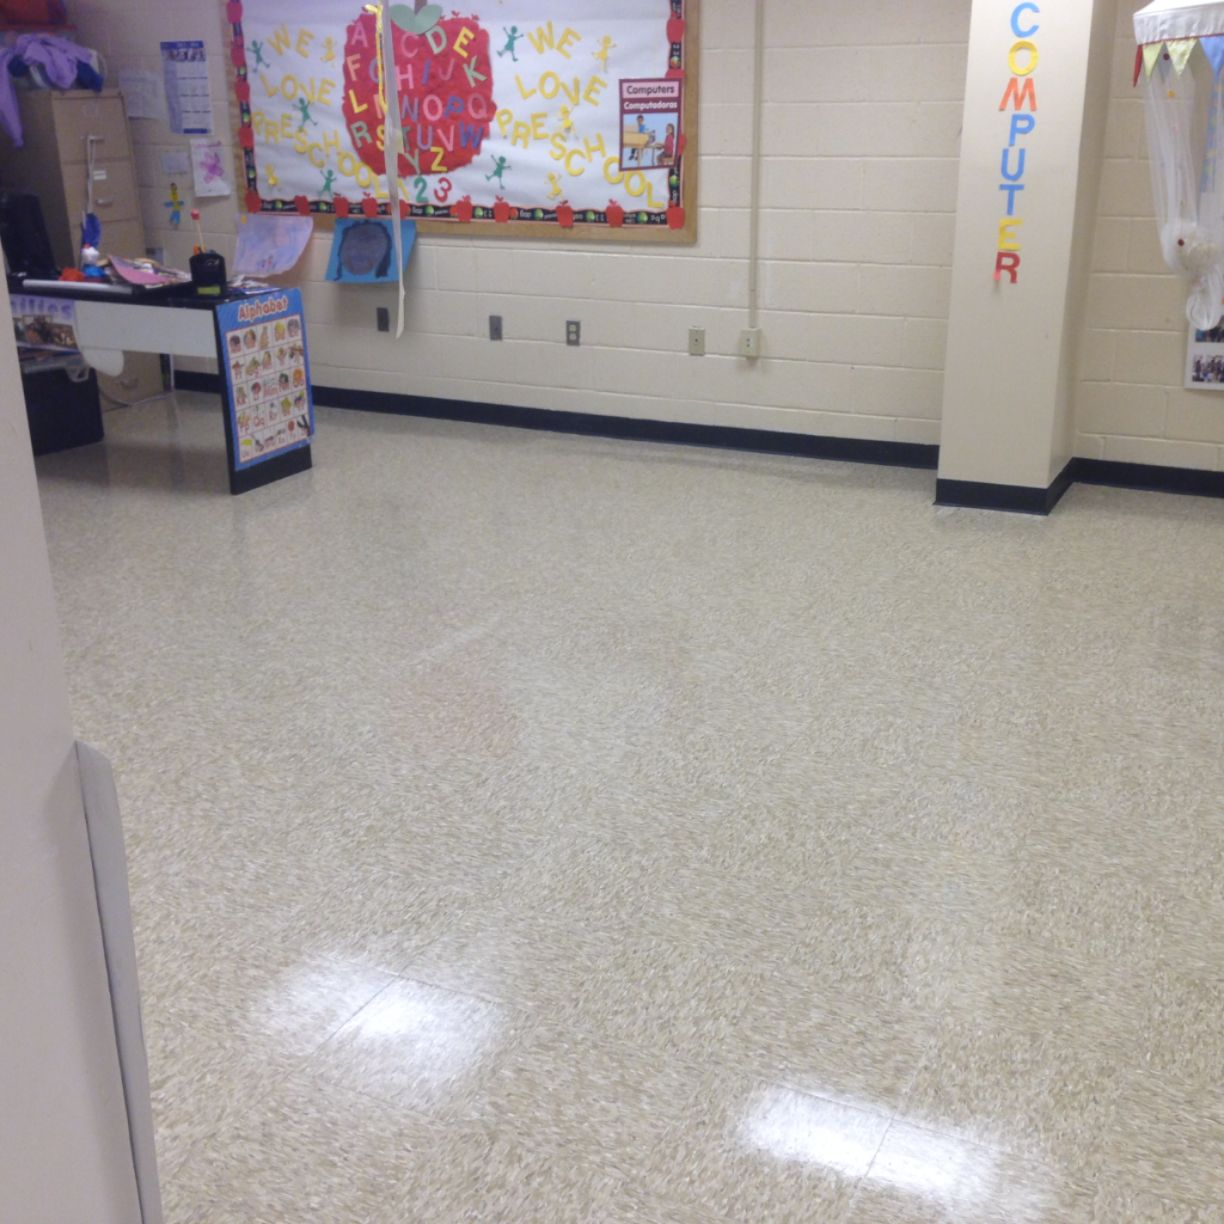 2Clean Commercial Cleaning Services, LLC